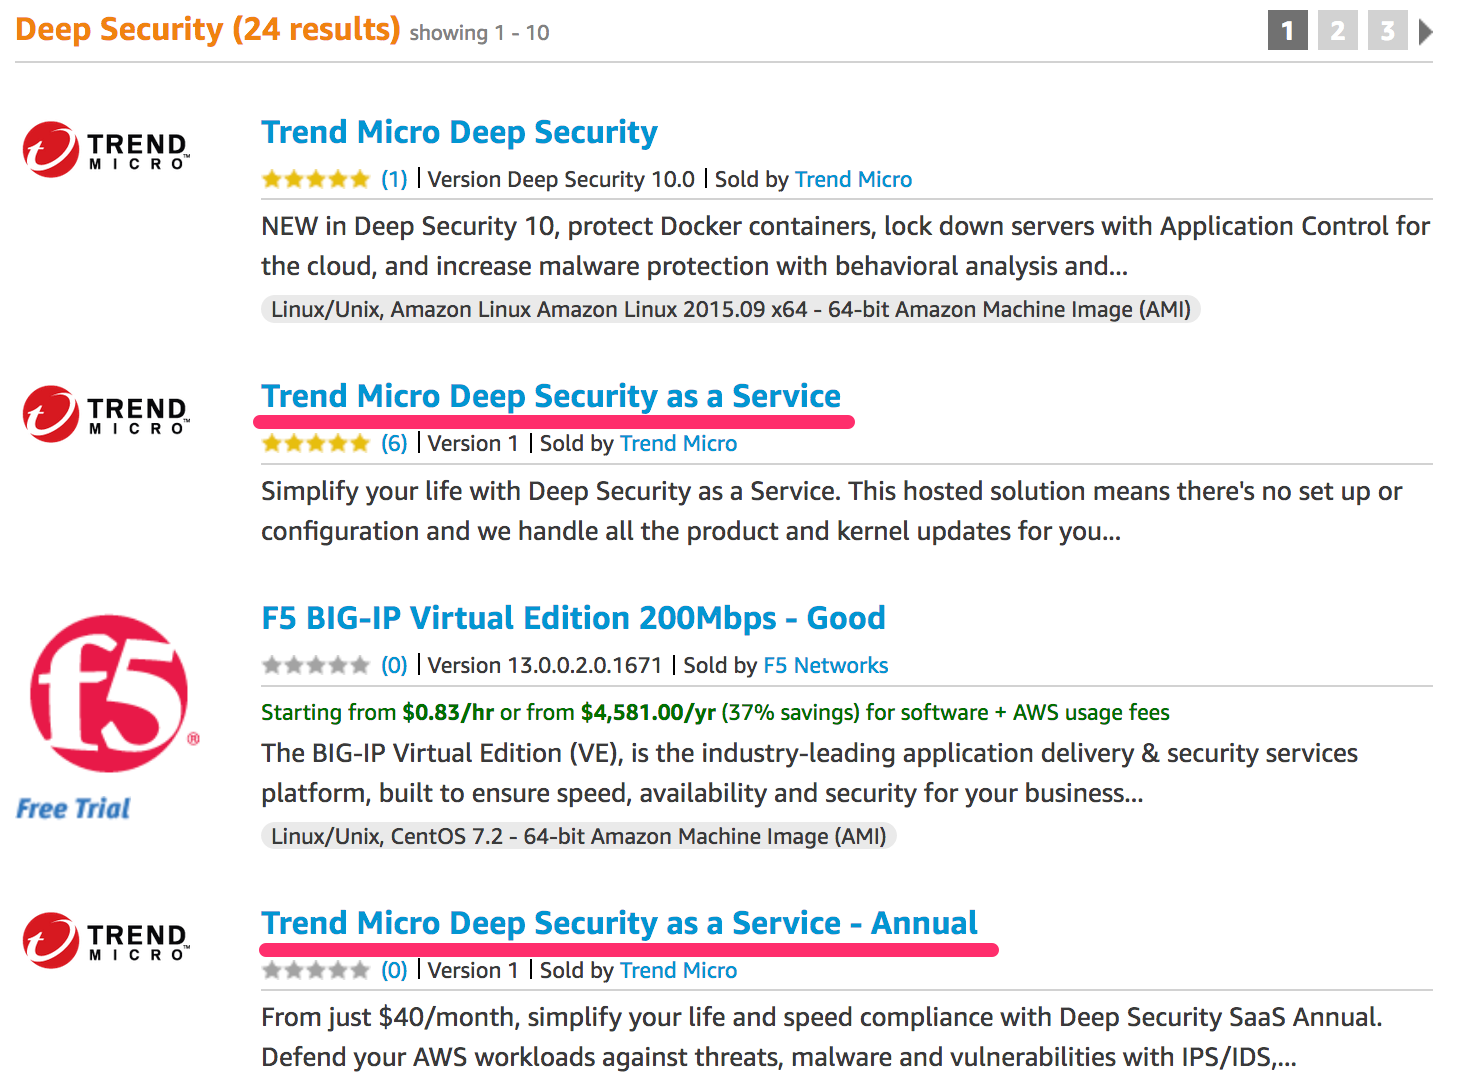 deep security as a serviceをaws marketplaceで買ってみる qiita